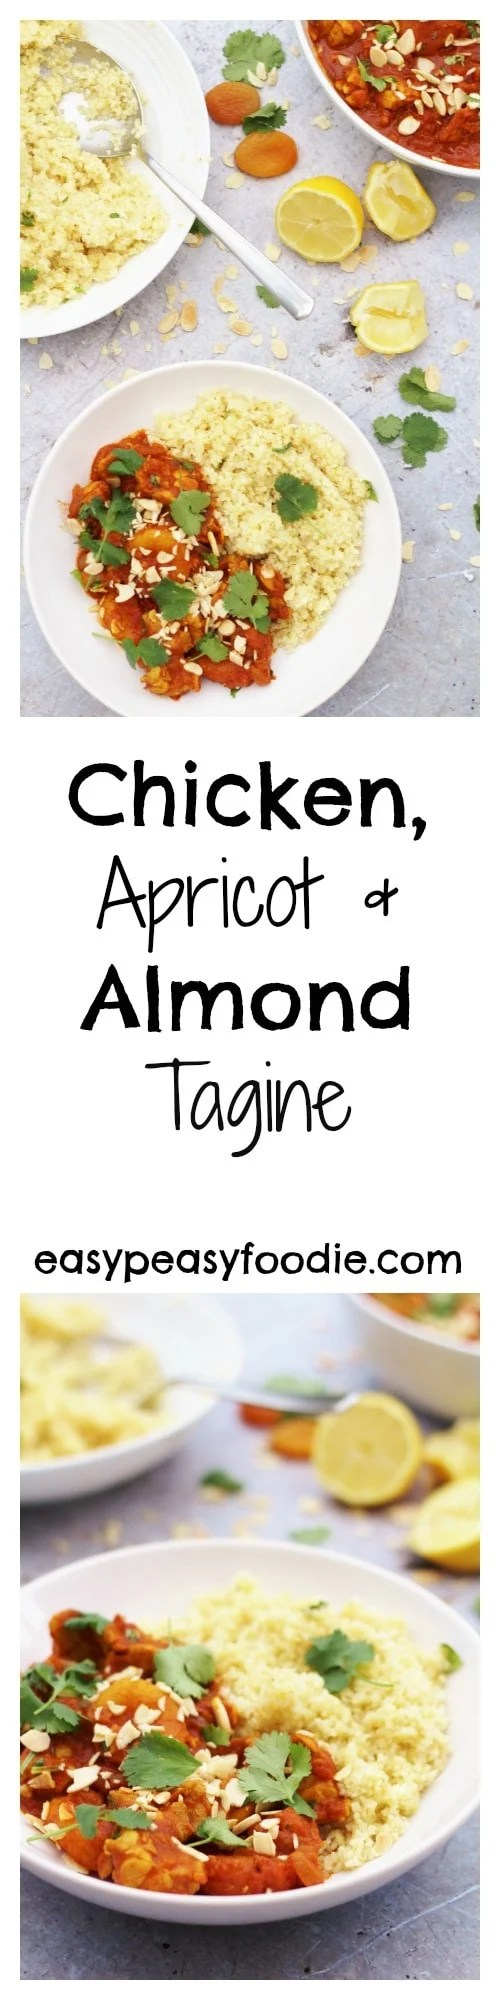 Quick, simple, healthy and tasty – these are some of my favourite words when it comes to food and this deliciously easy Chicken, Apricot and Almond Tagine ticks all those boxes and more! #tagine #chicken #chickentagine #apricots #almonds #couscous #lemon #easydinners #healthydinners #familydinners #midweekmeals #easypeasyfoodie